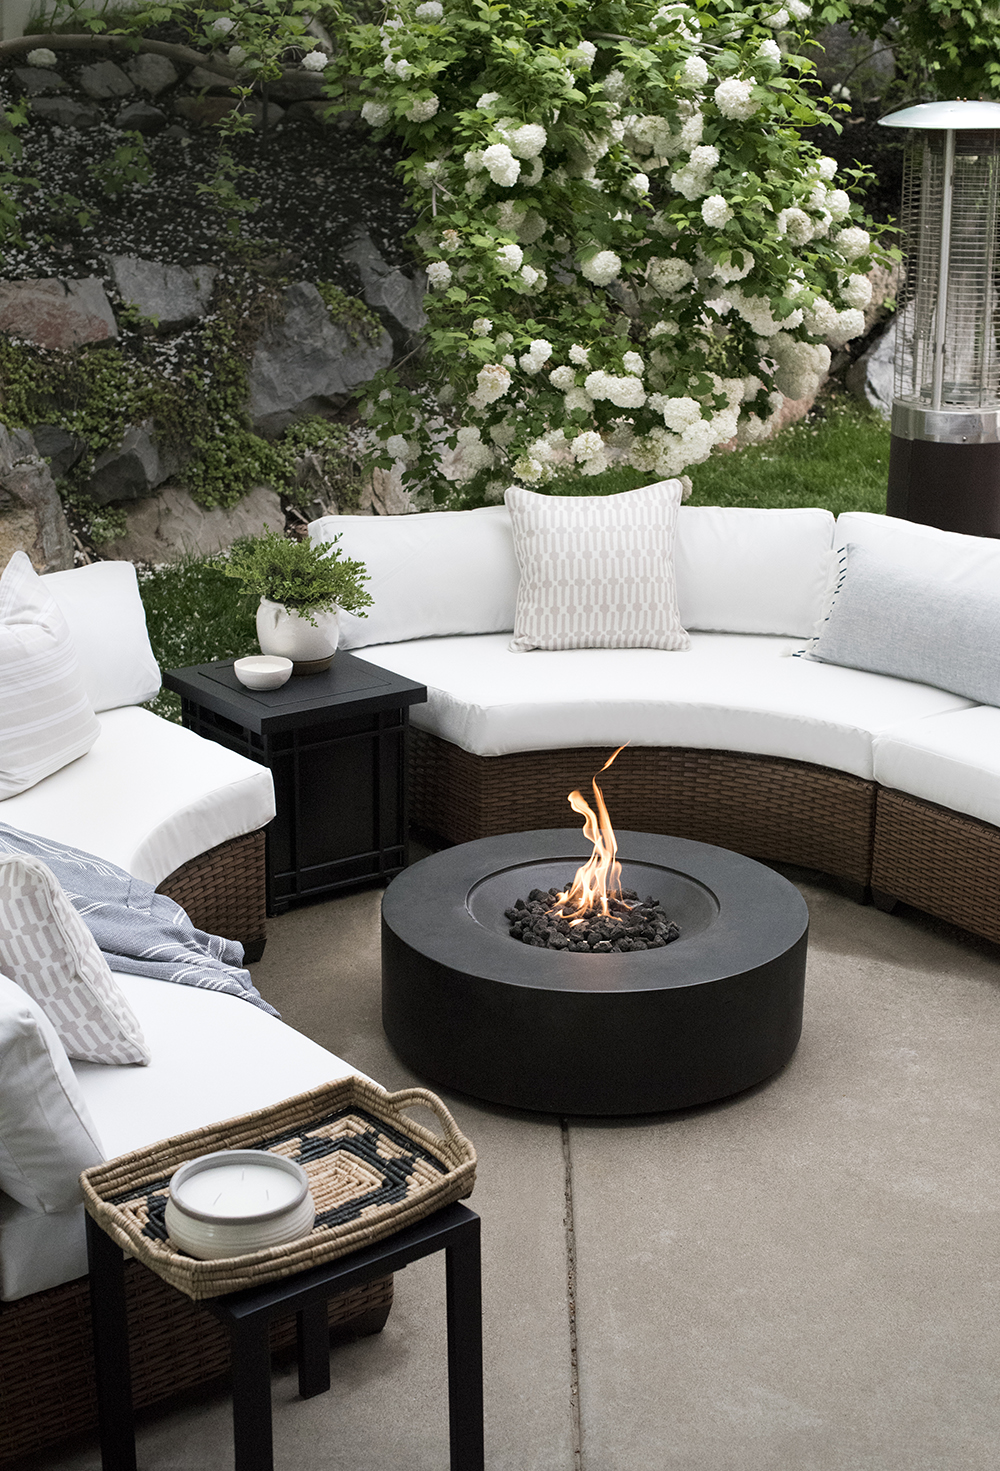 Curved Outdoor Seating Around Fire Pit Room For Tuesday